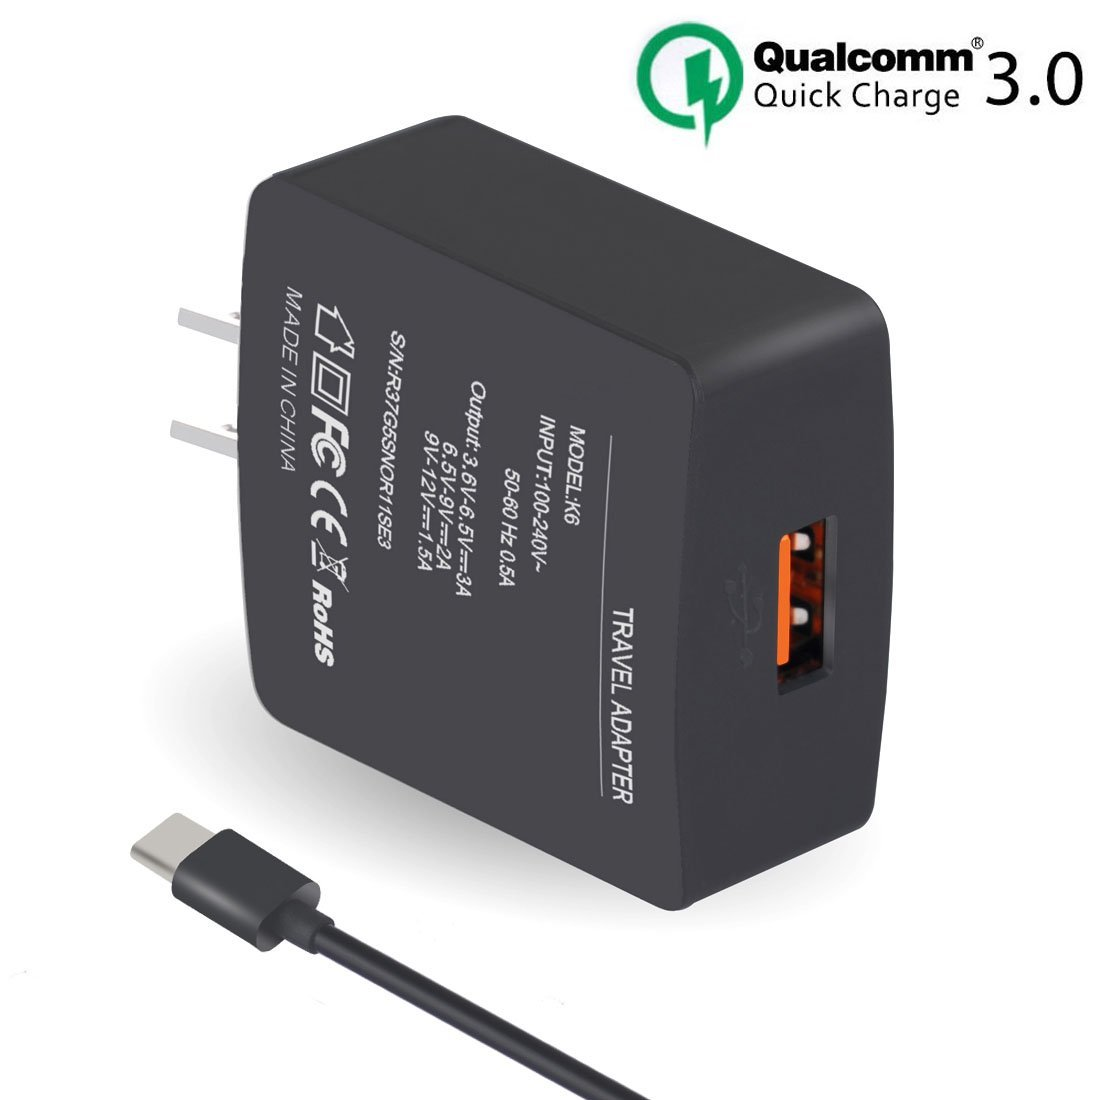 Frustration Free Packaging Verizon Micro USB Rapid Wall Charger with 6 ft Cable For Samsung Galaxy s7 edge//s7 //s6 //s6 edge //Note 5 note 4 Note 3// Note 2// HTC One M9 HTC One M8 LG G3//G4//G2 Black